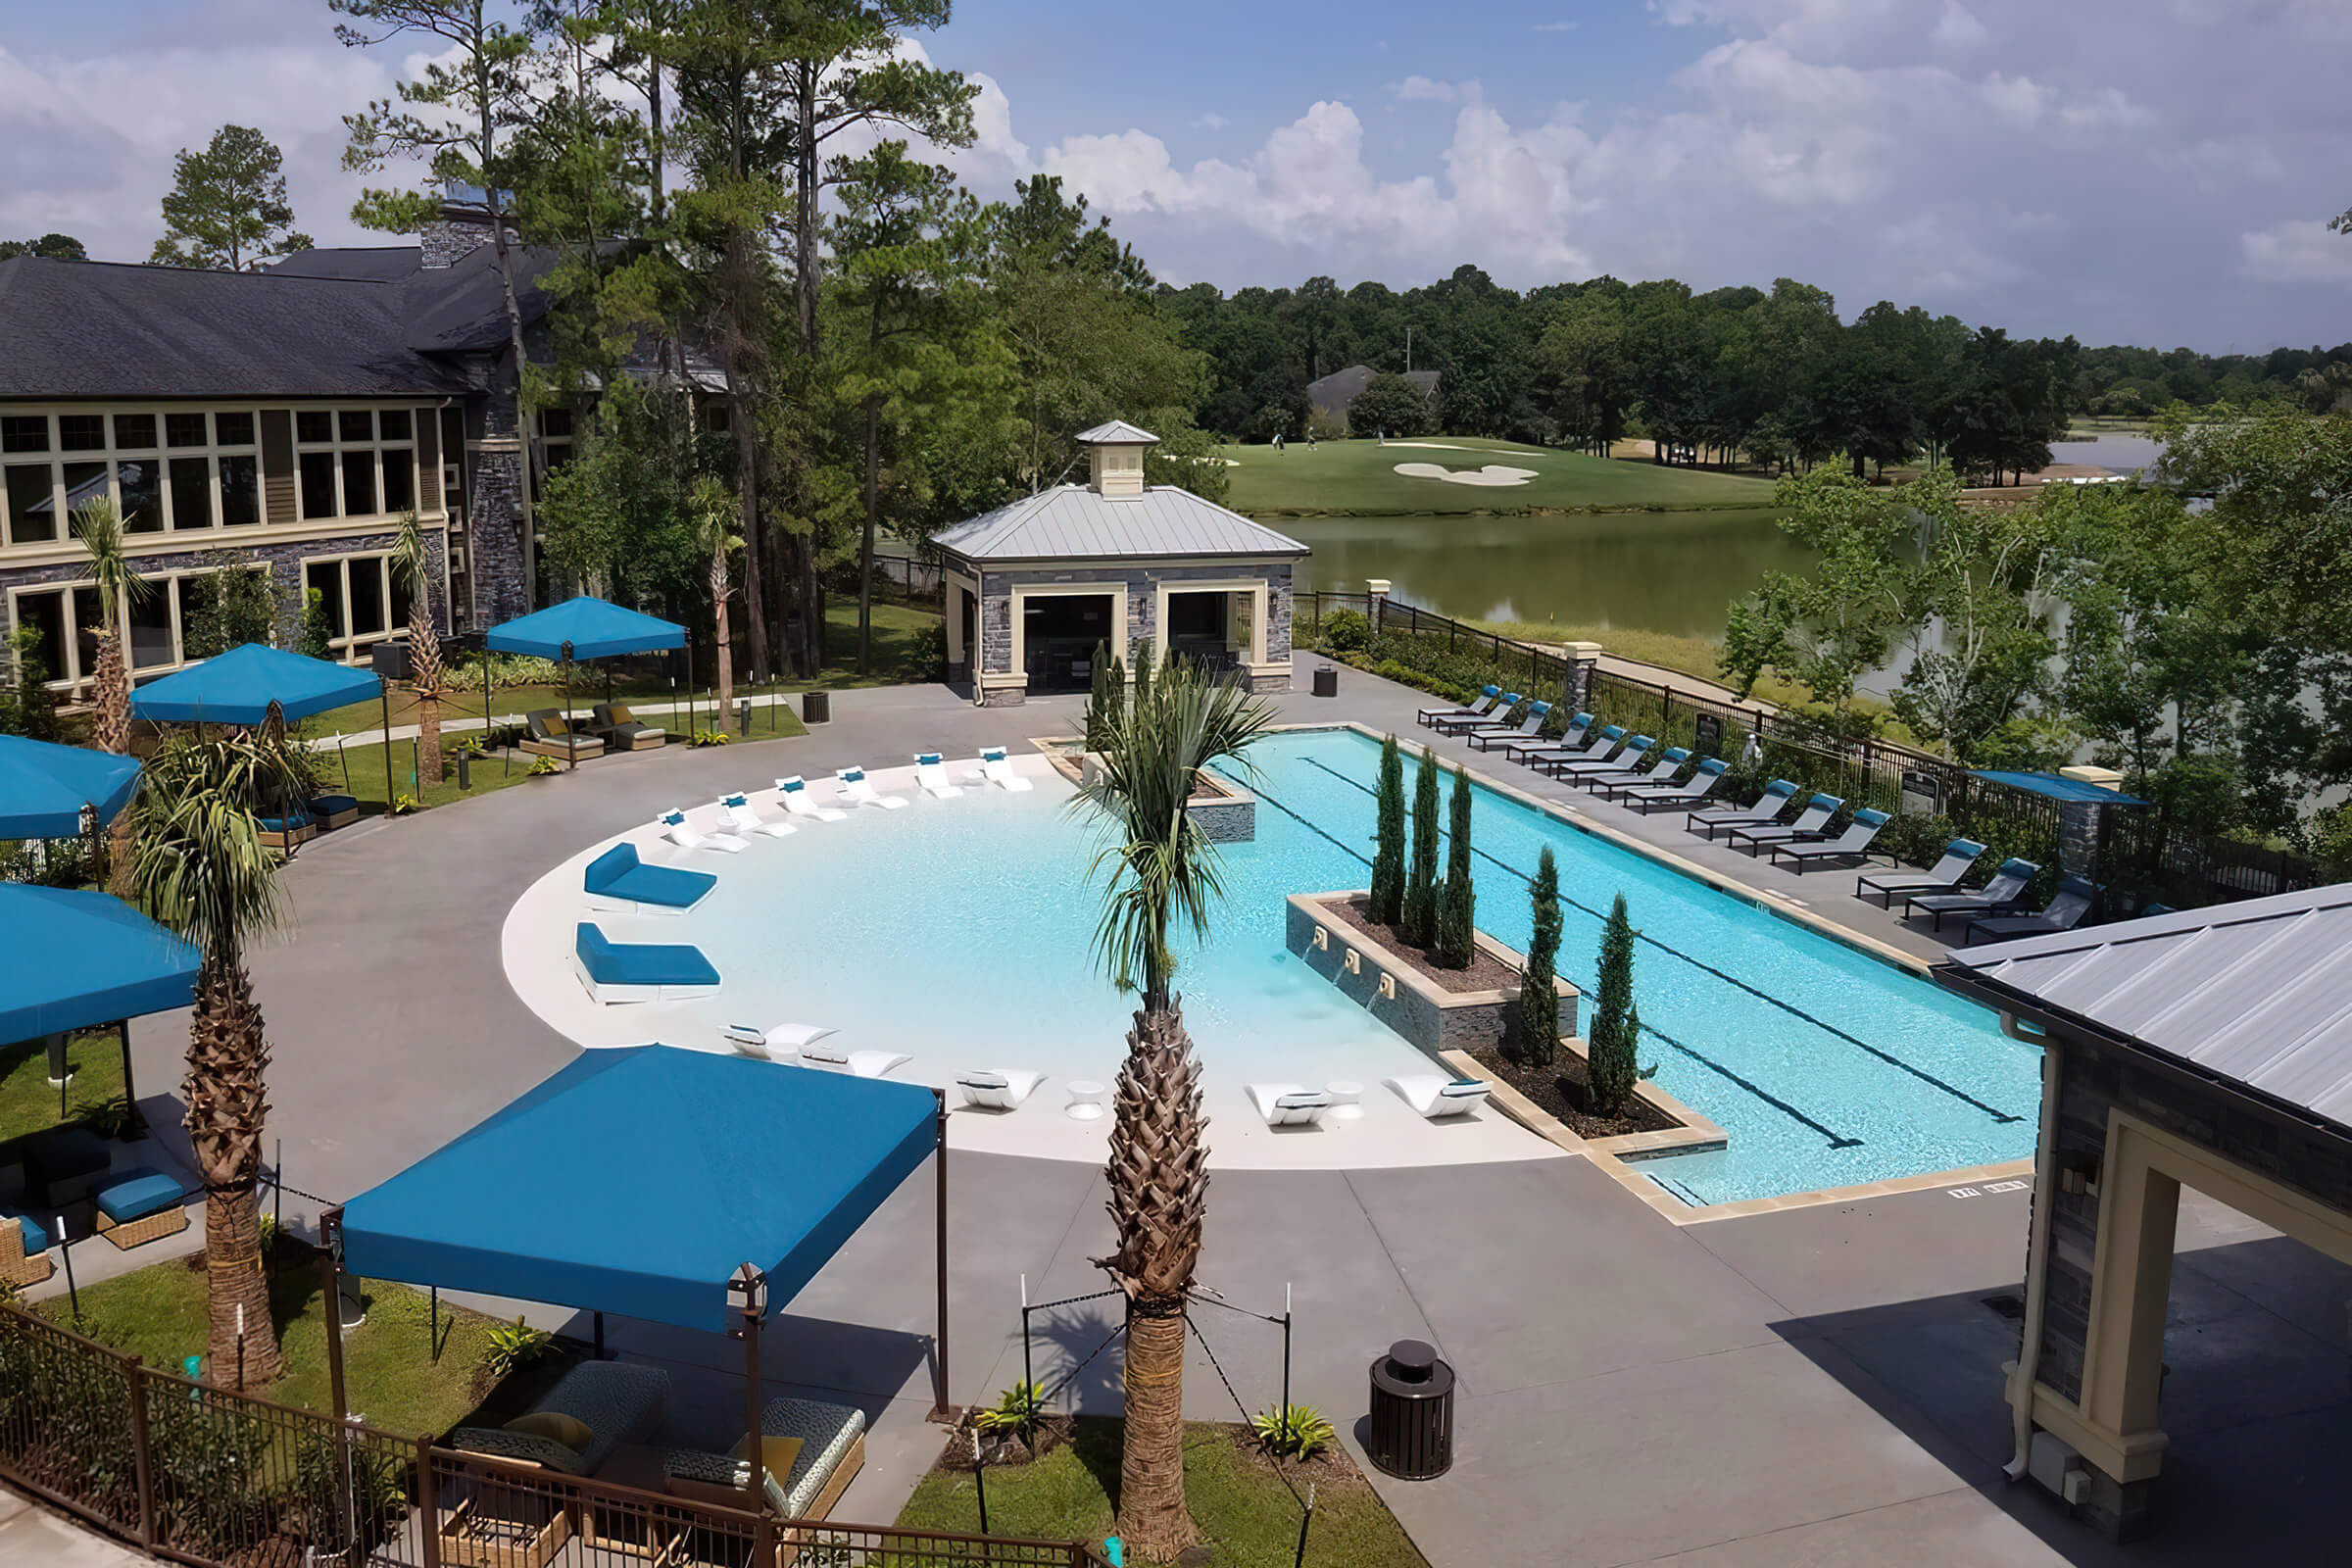 Cabanas around pool with shallow half cirlcle connected to deeper rectangular pool. Golf course view